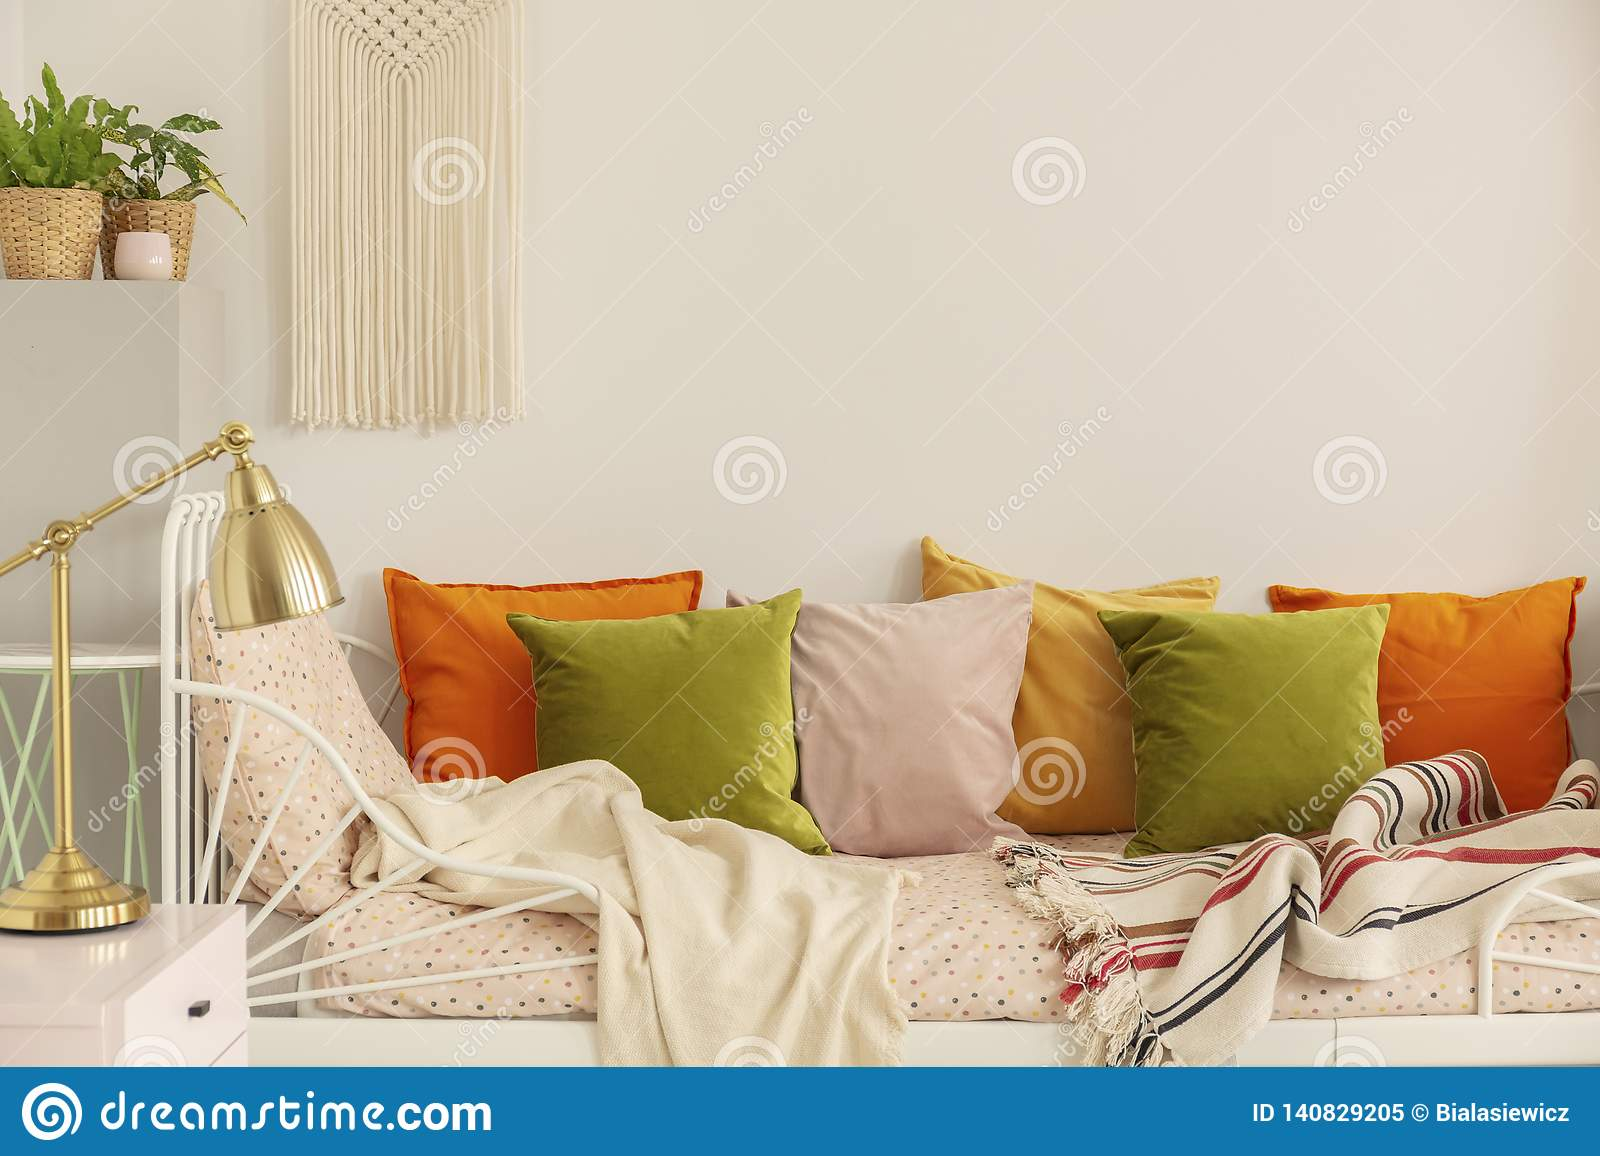 Golden Lamp On The Nightstand Next To Olive Green Pastel Pink Yellow And Orange Pillows On Single Metal Bed With Patterned Stock Image Image Of Metal Lamp 140829205